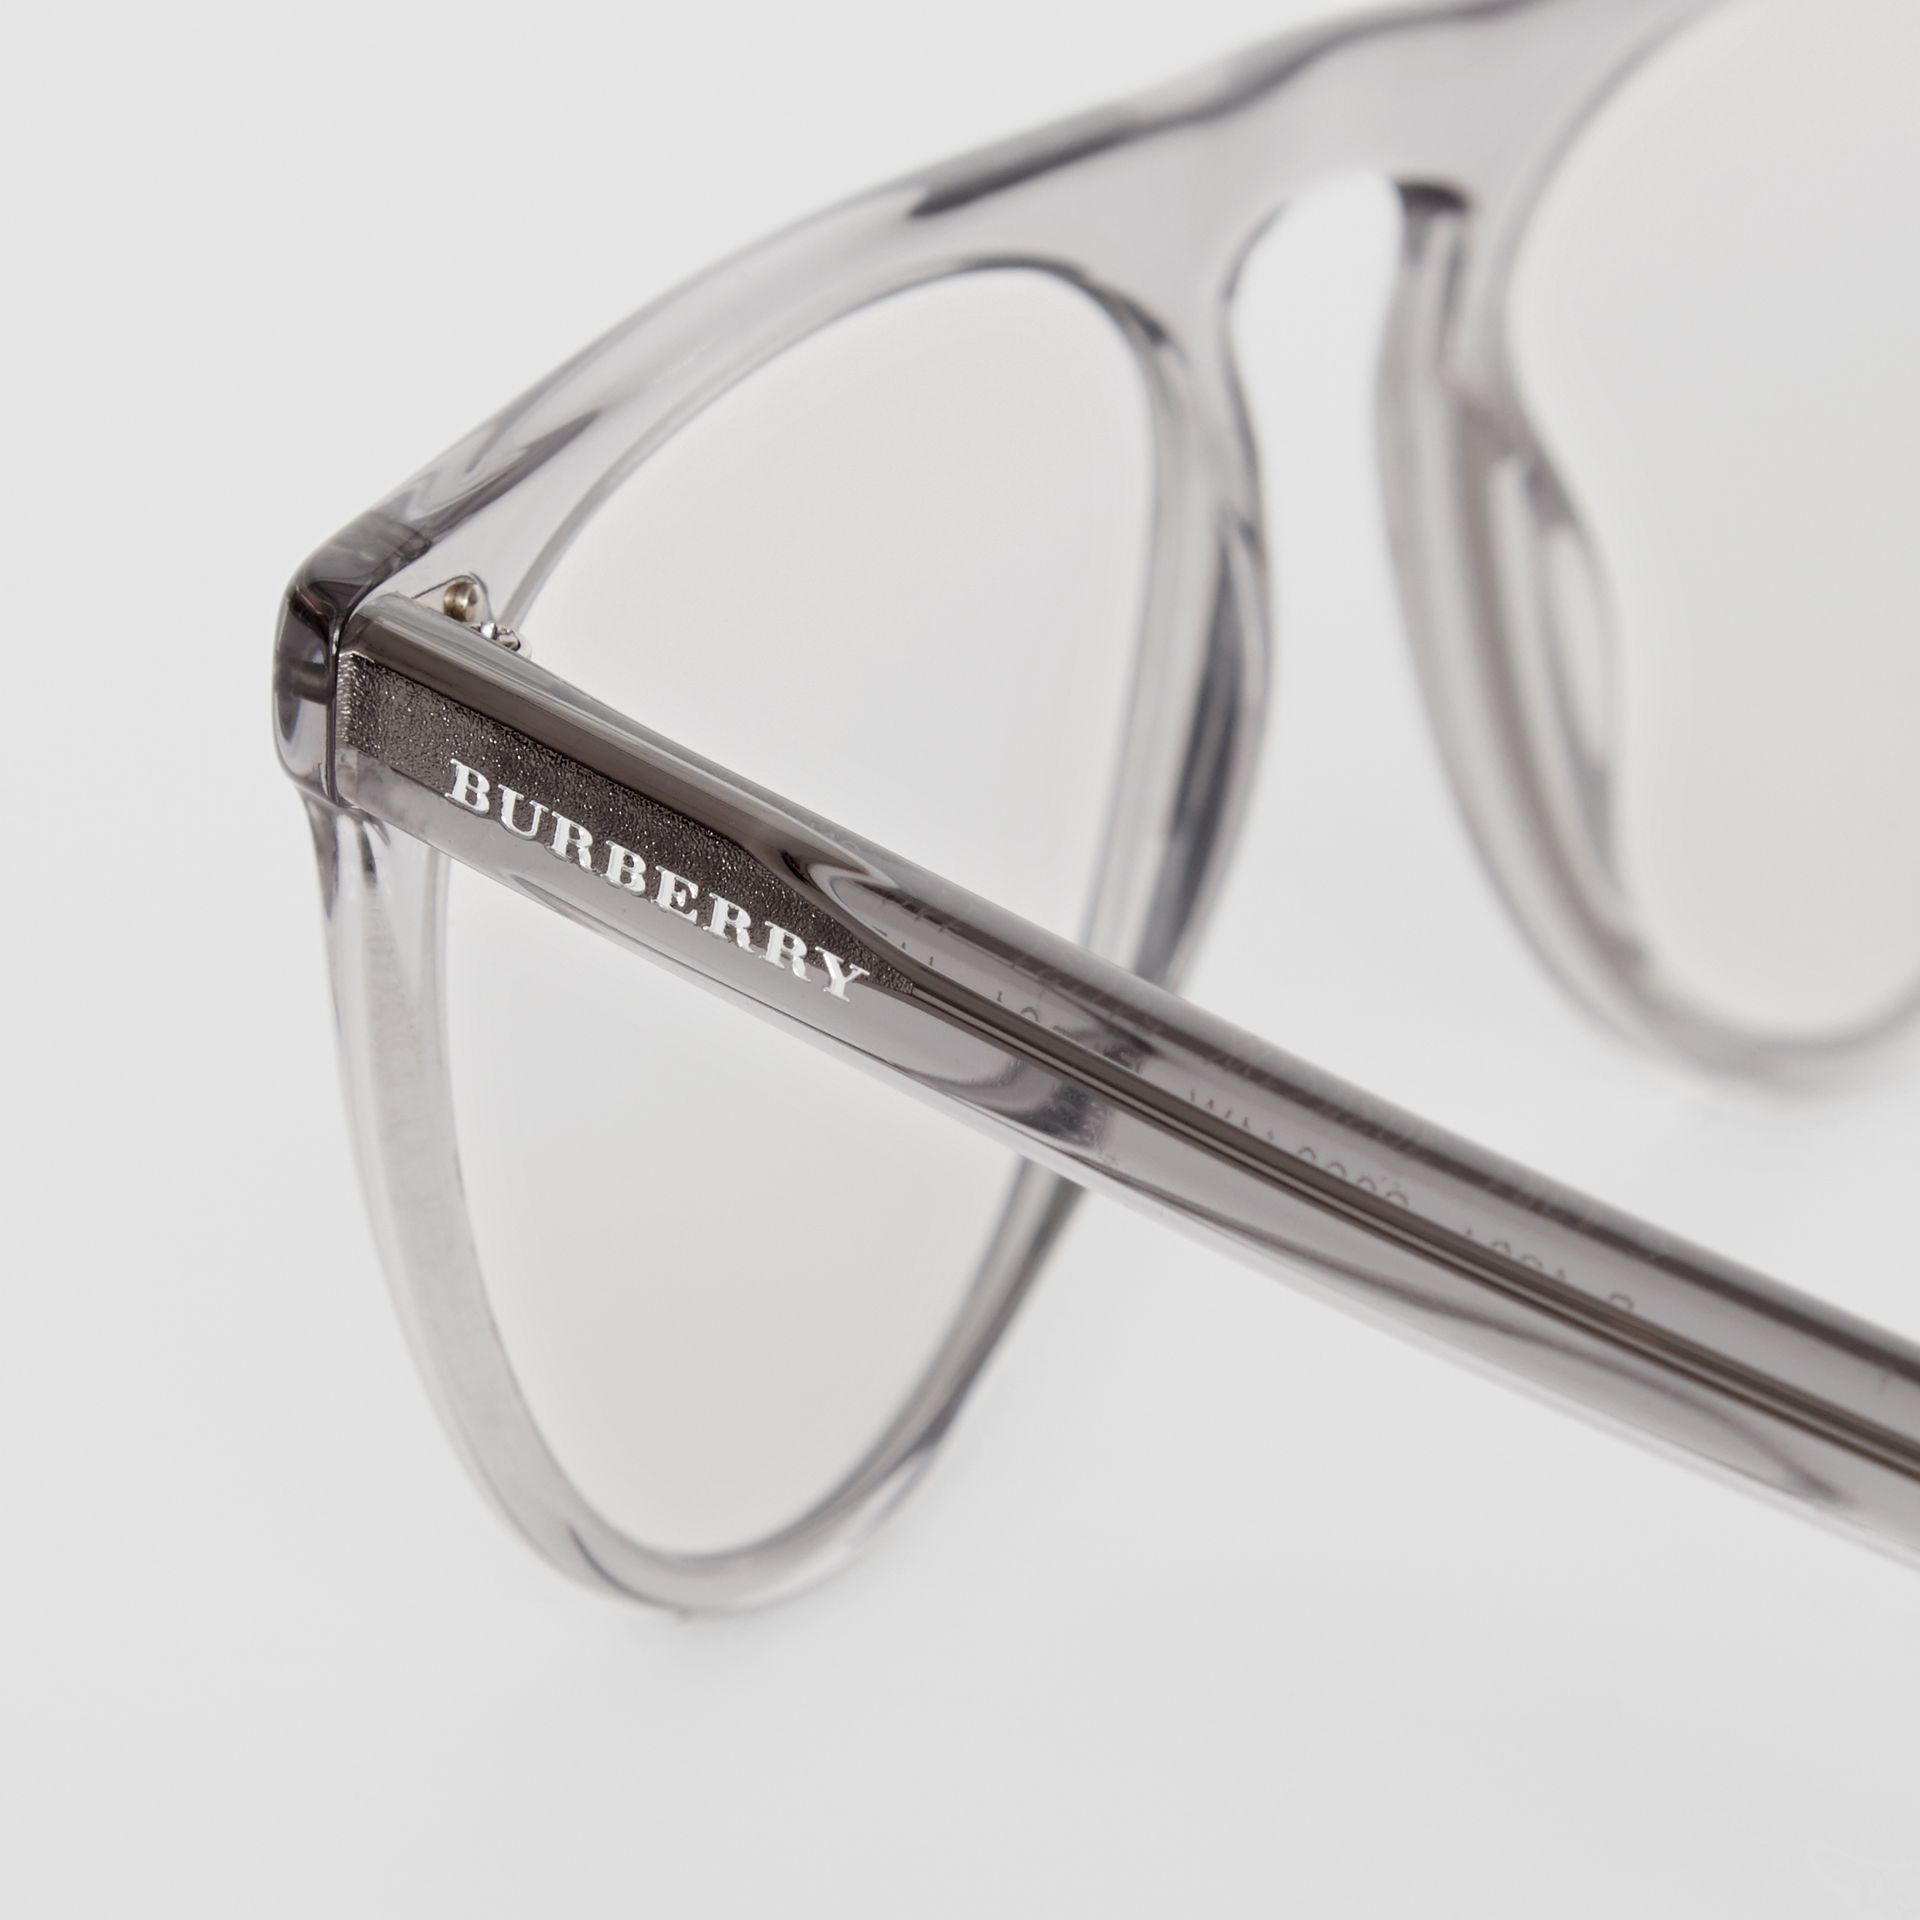 Keyhole D-shaped Optical Frames in Grey - Men | Burberry Australia - gallery image 1